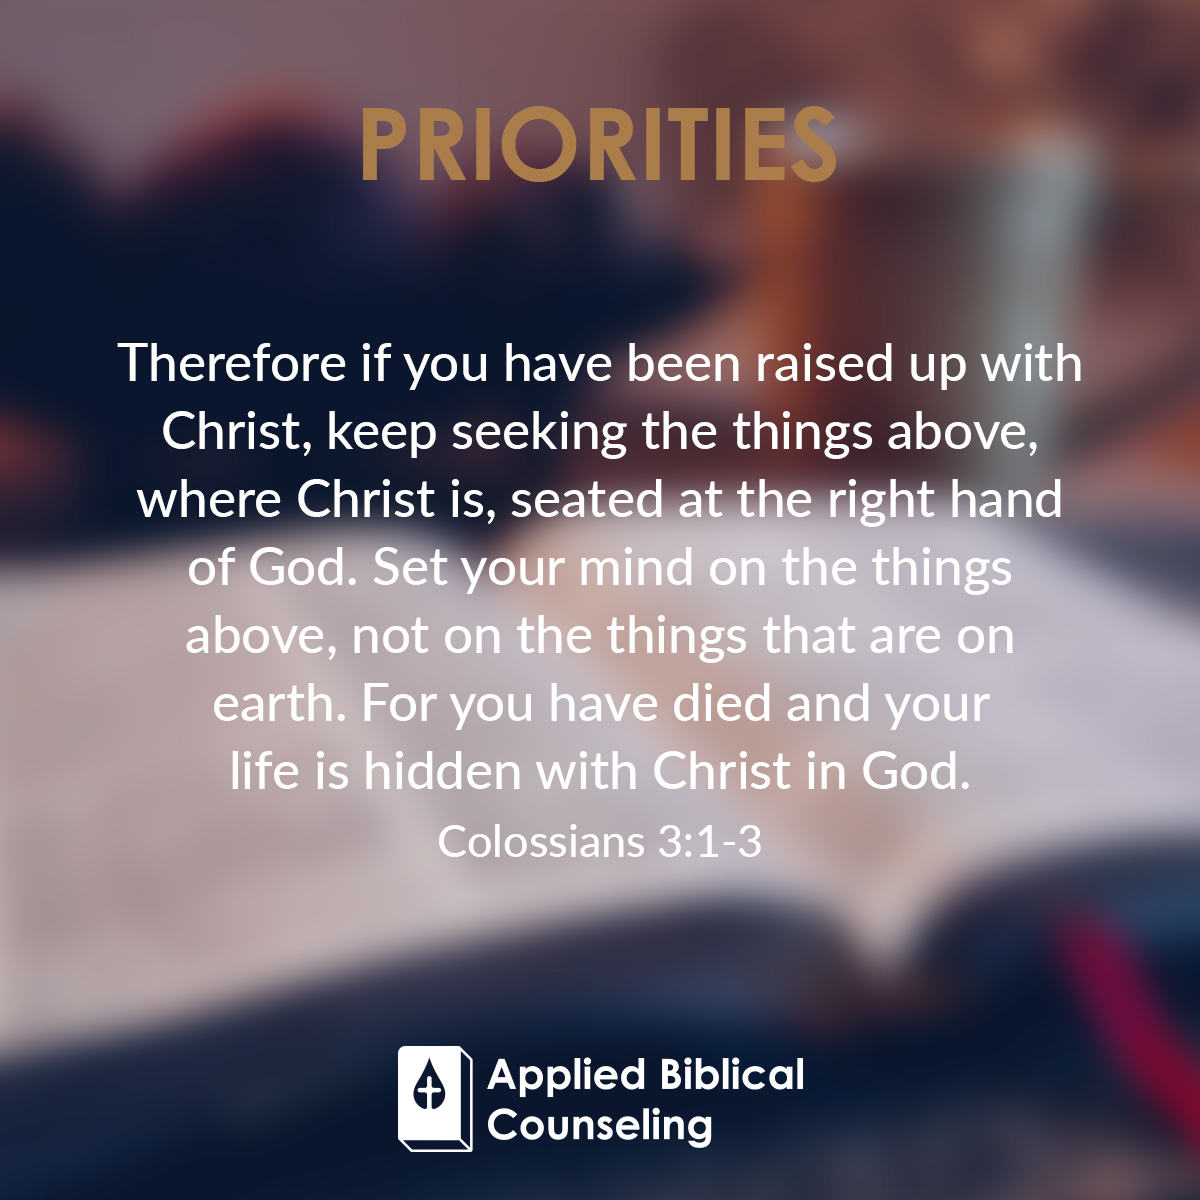 Applied Biblical Counseling Facebook w21 Priorities 1